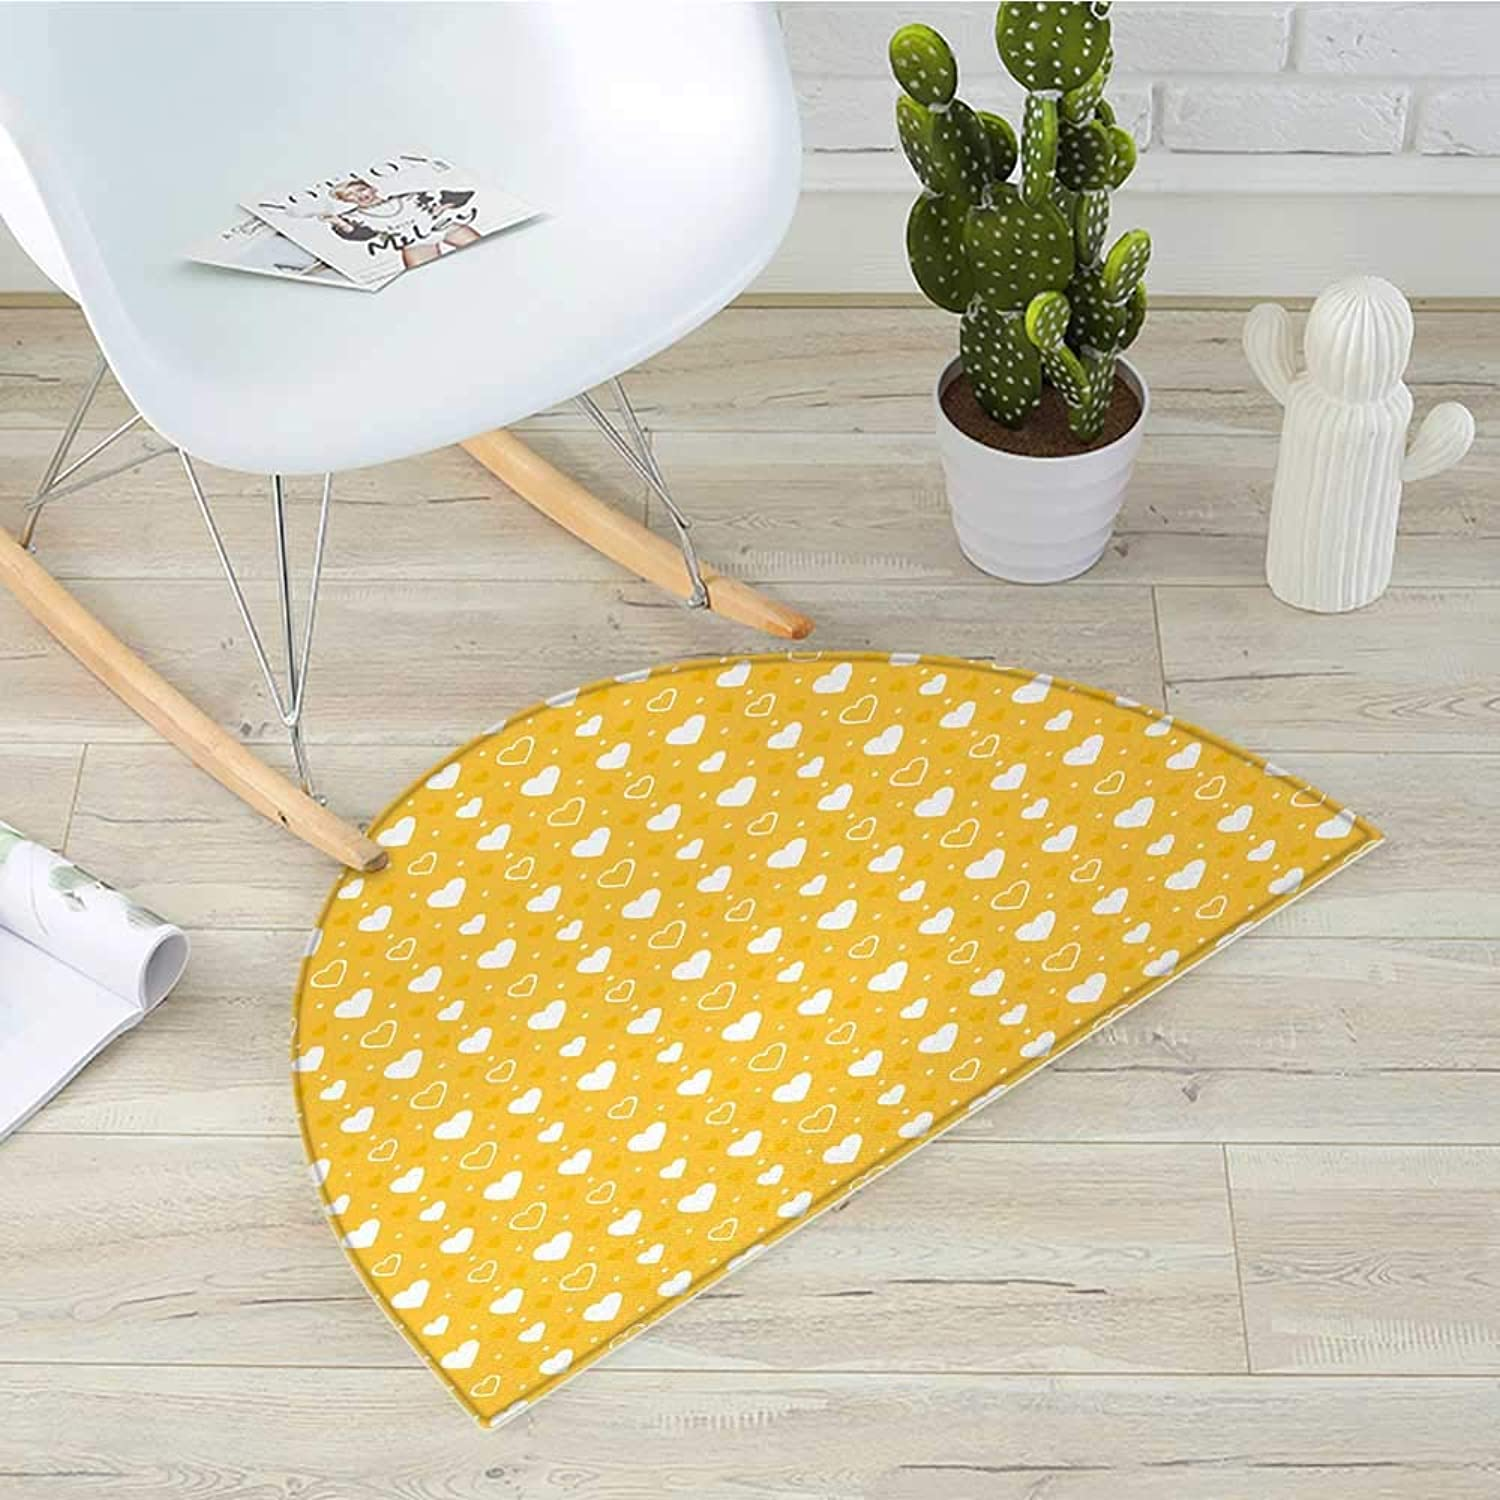 Yellow Half Round Door mats Full and Empty Heart Shapes with Little Dots and Tiny Cute Sweet Hearts Pattern Bathroom Mat H 39.3  xD 59  Yellow White